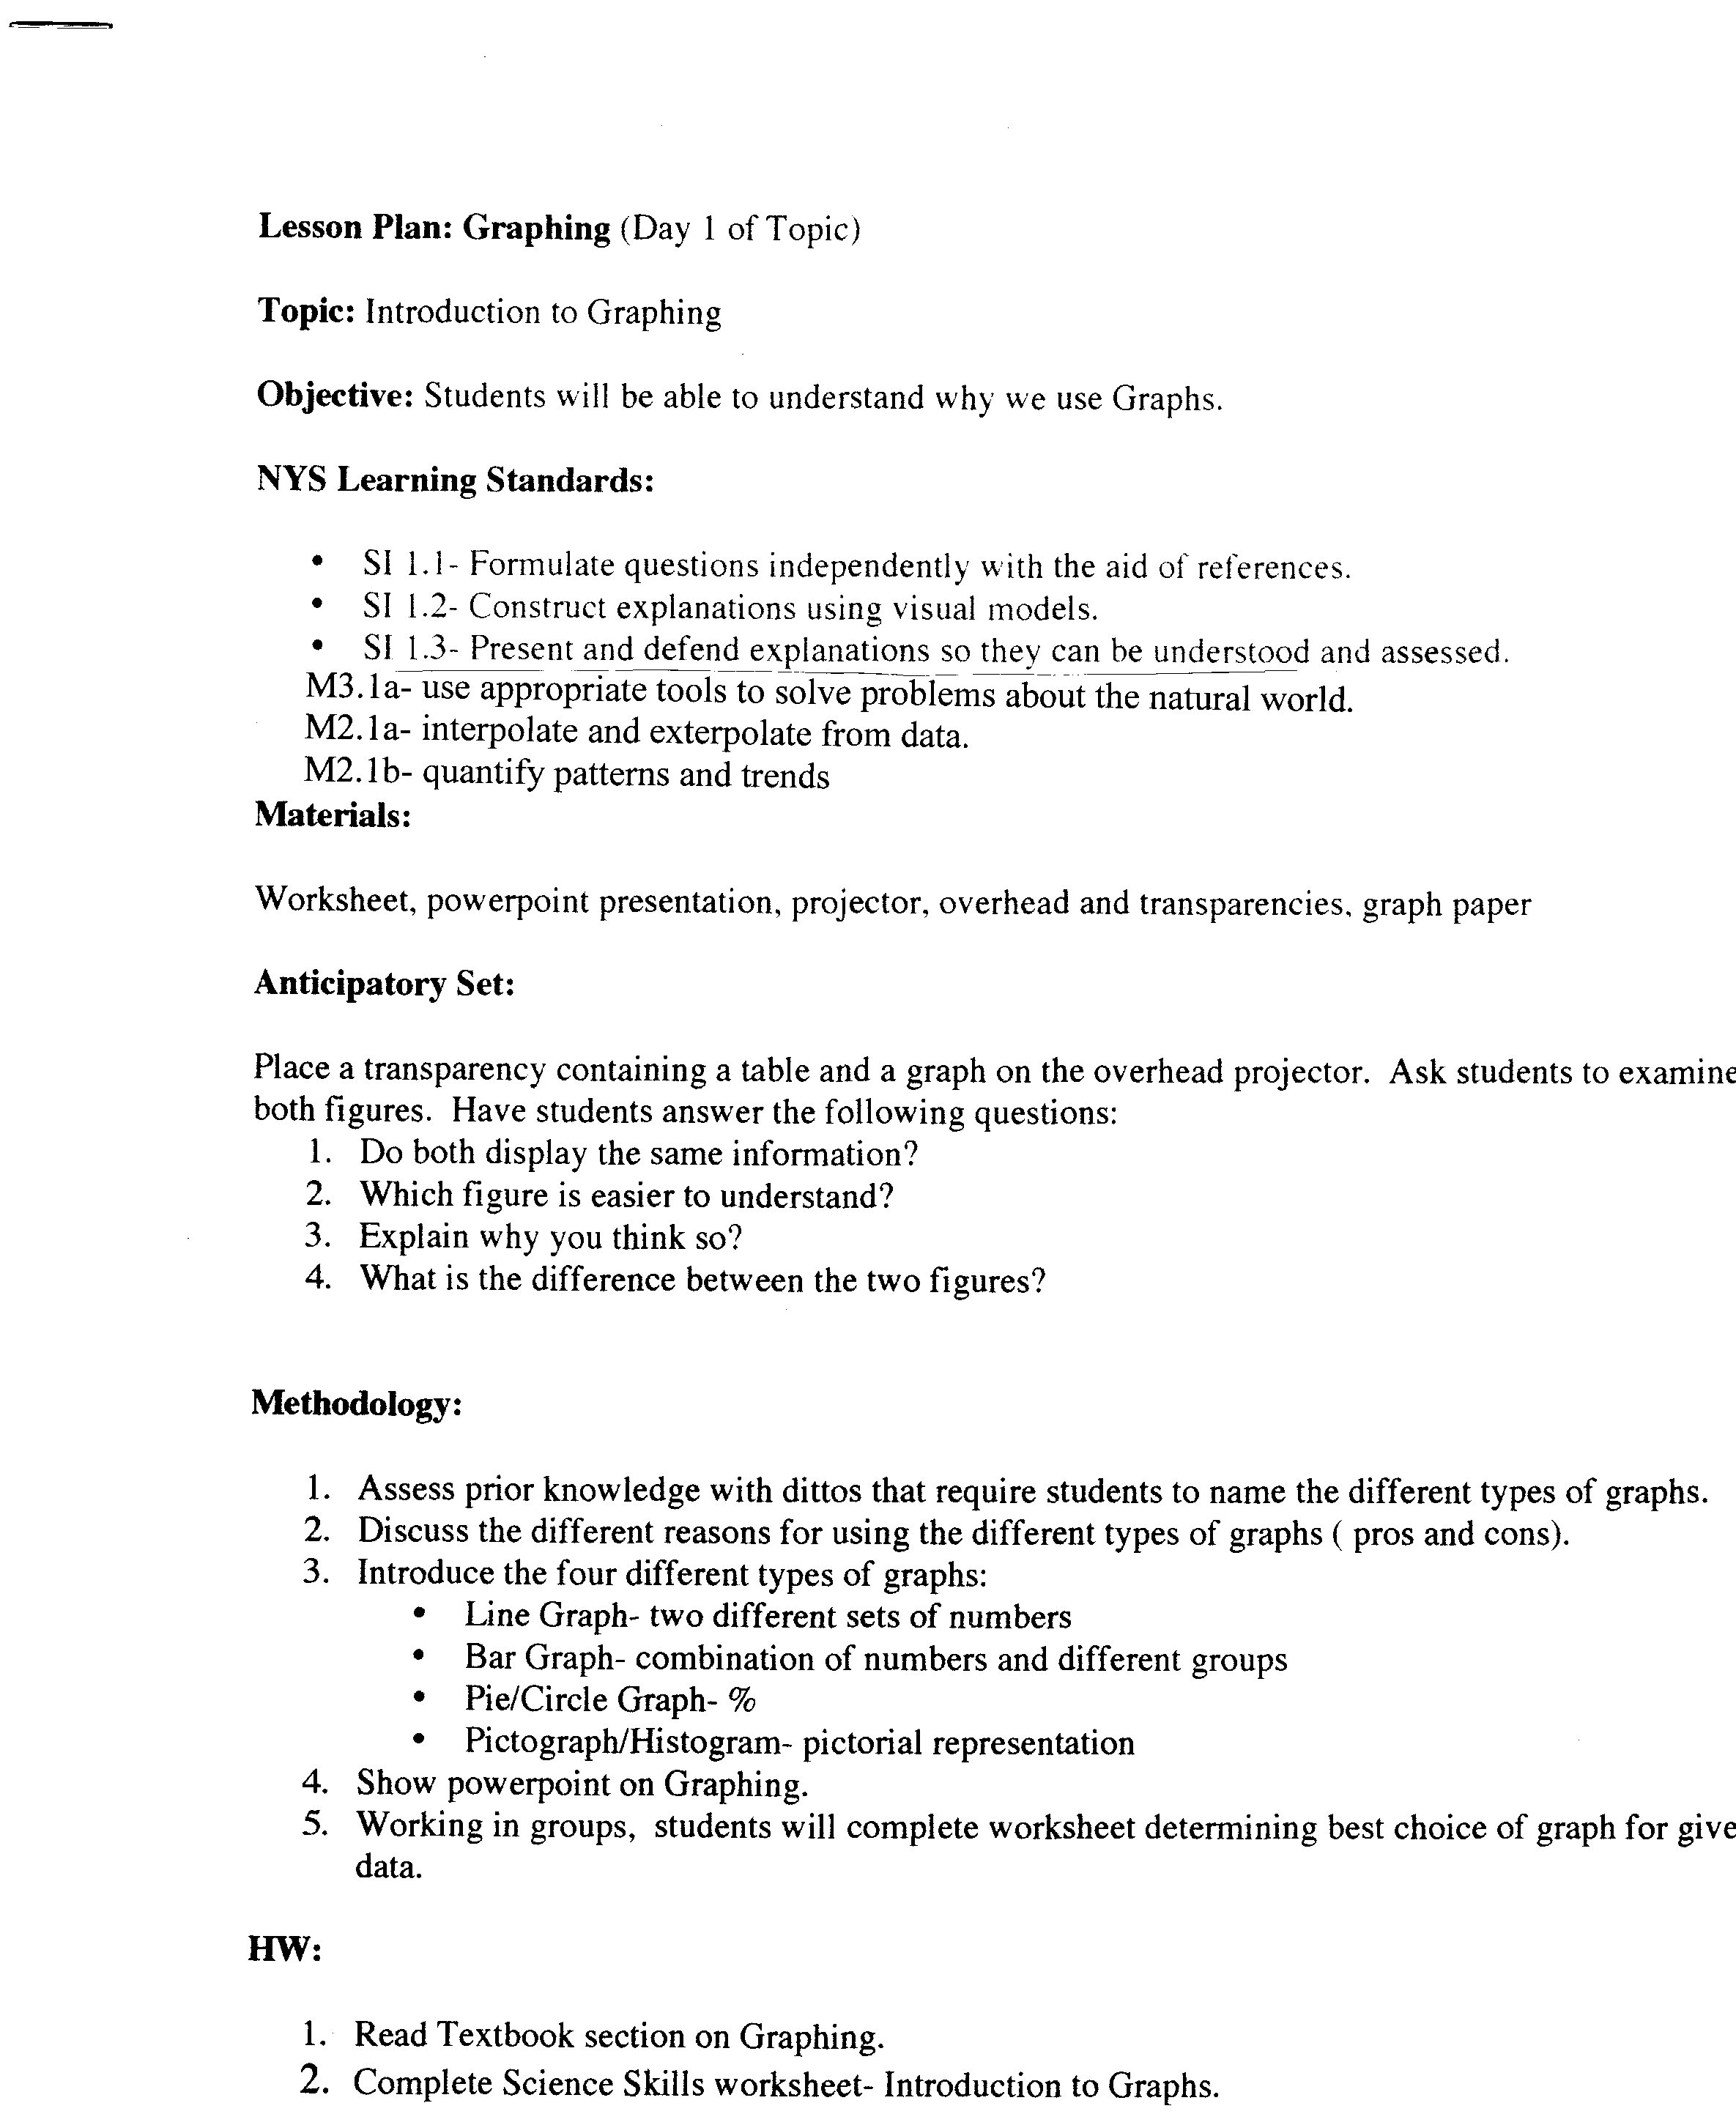 Graph Worksheet Graphing And Intro To Science : graph, worksheet, graphing, intro, science, Graph, Worksheet, Graphing, Intro, Science, Answer, Promotiontablecovers